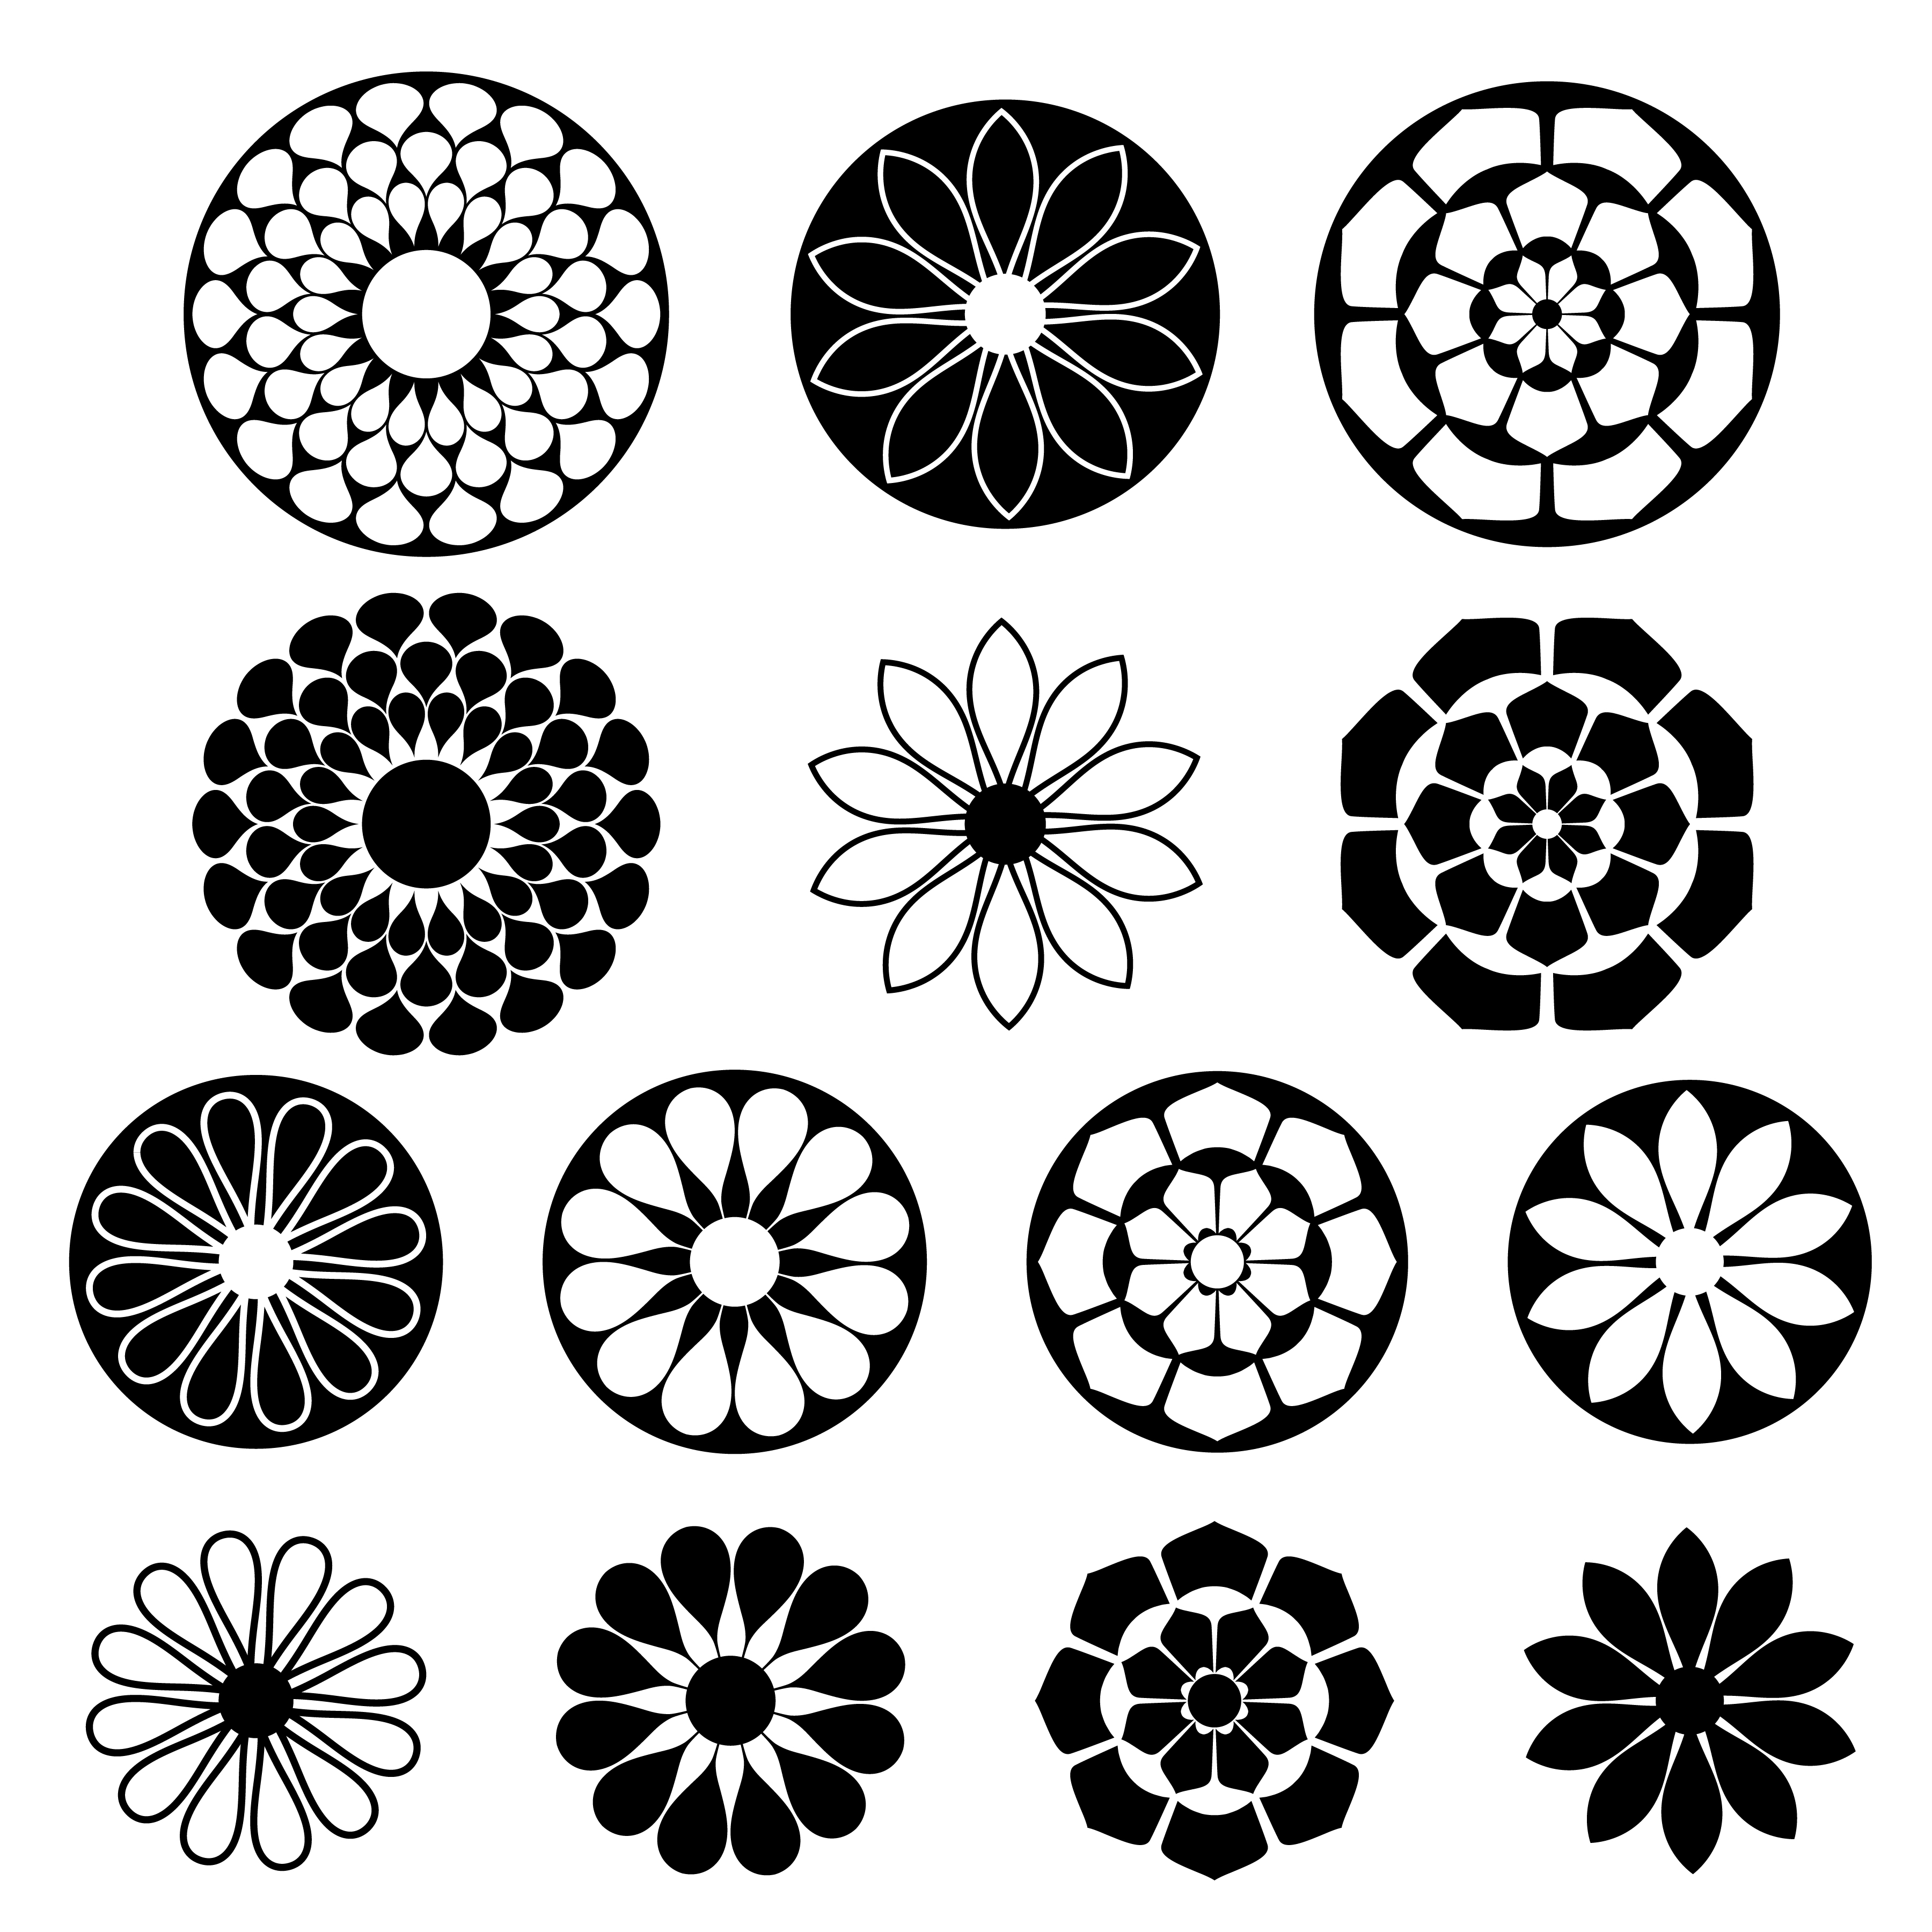 black silhouette flower shapes.